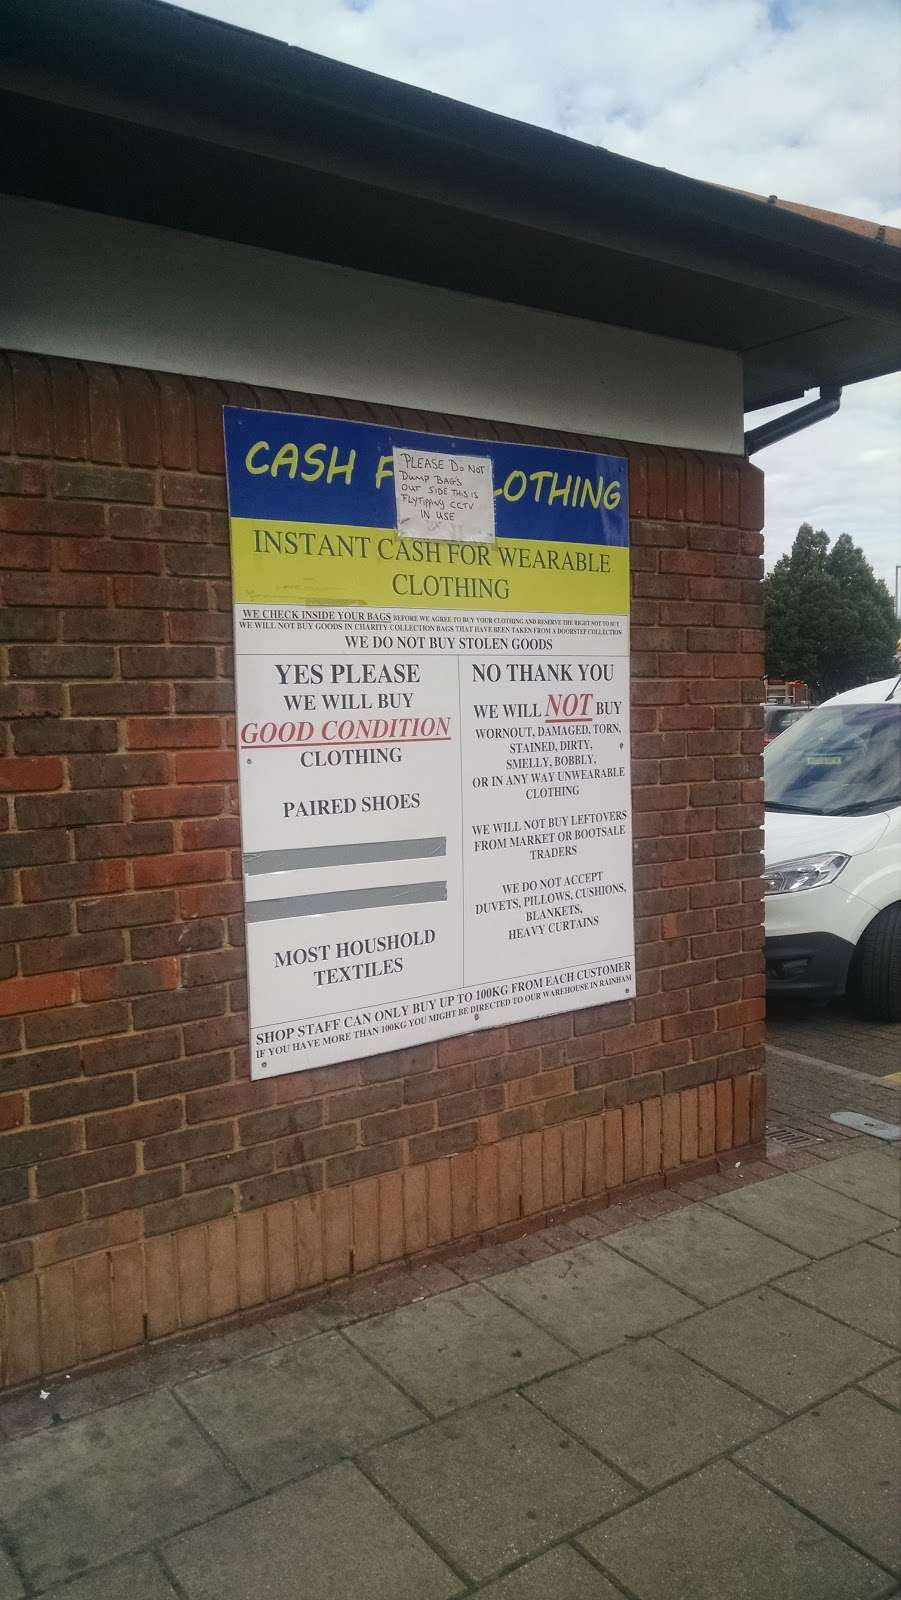 Cash For Clothes - clothing store    Photo 2 of 2   Address: 692 Becontree Ave, Dagenham RM8 1BD, UK